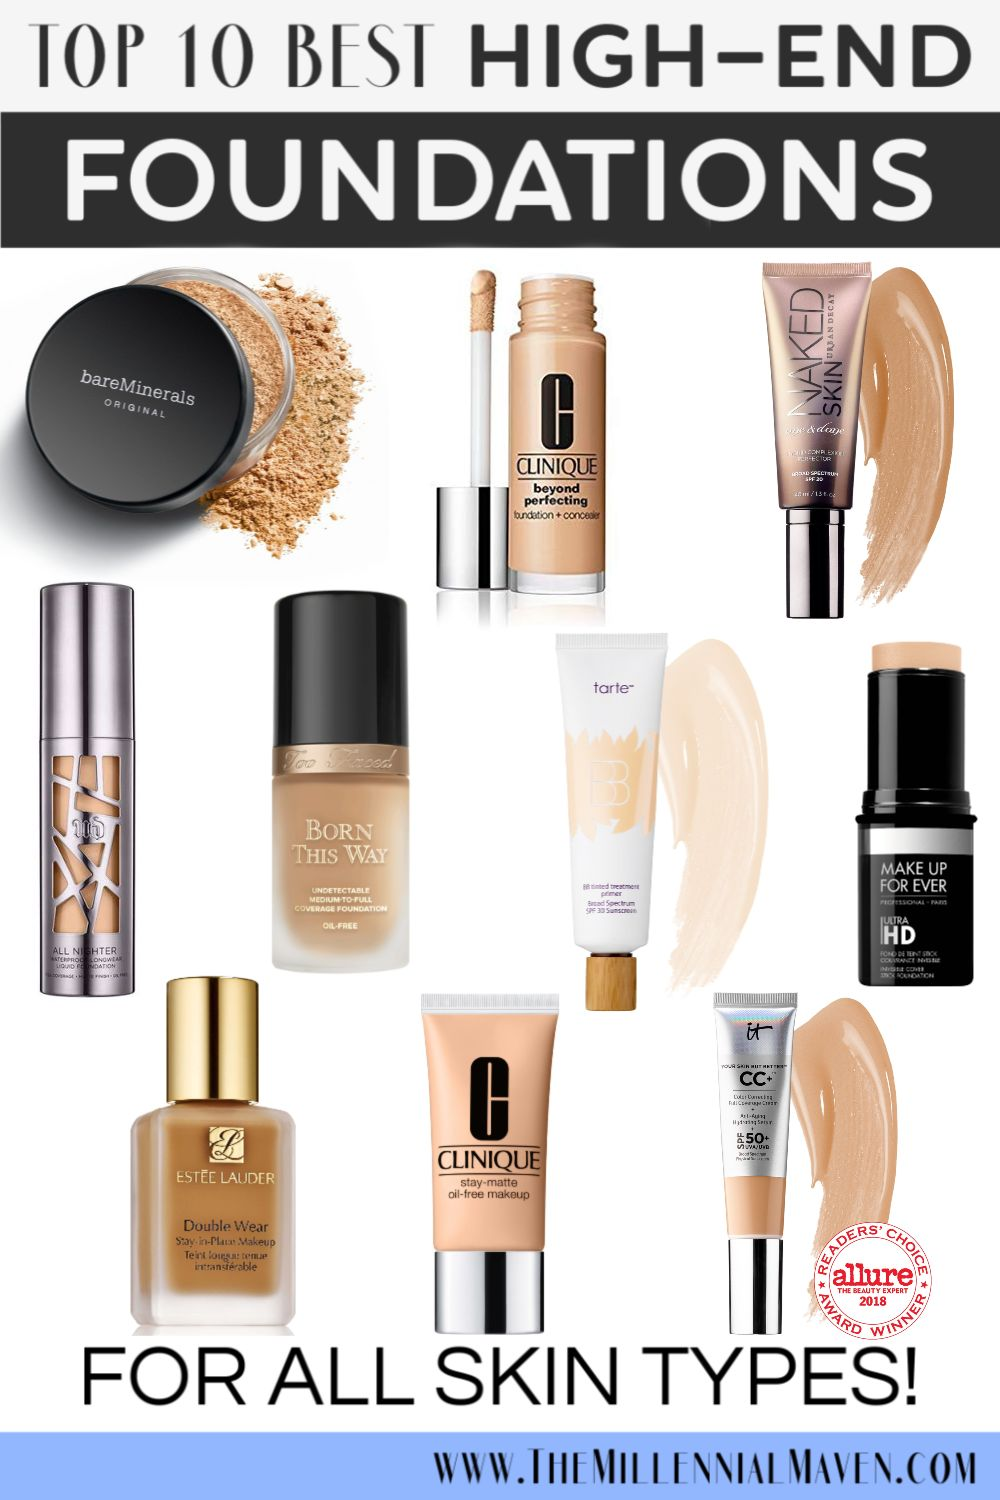 *UPDATED 2019* My 10 Favorite High-End Foundations For All Skin Types (Best Foundations at Sephora) | The Millennial Maven